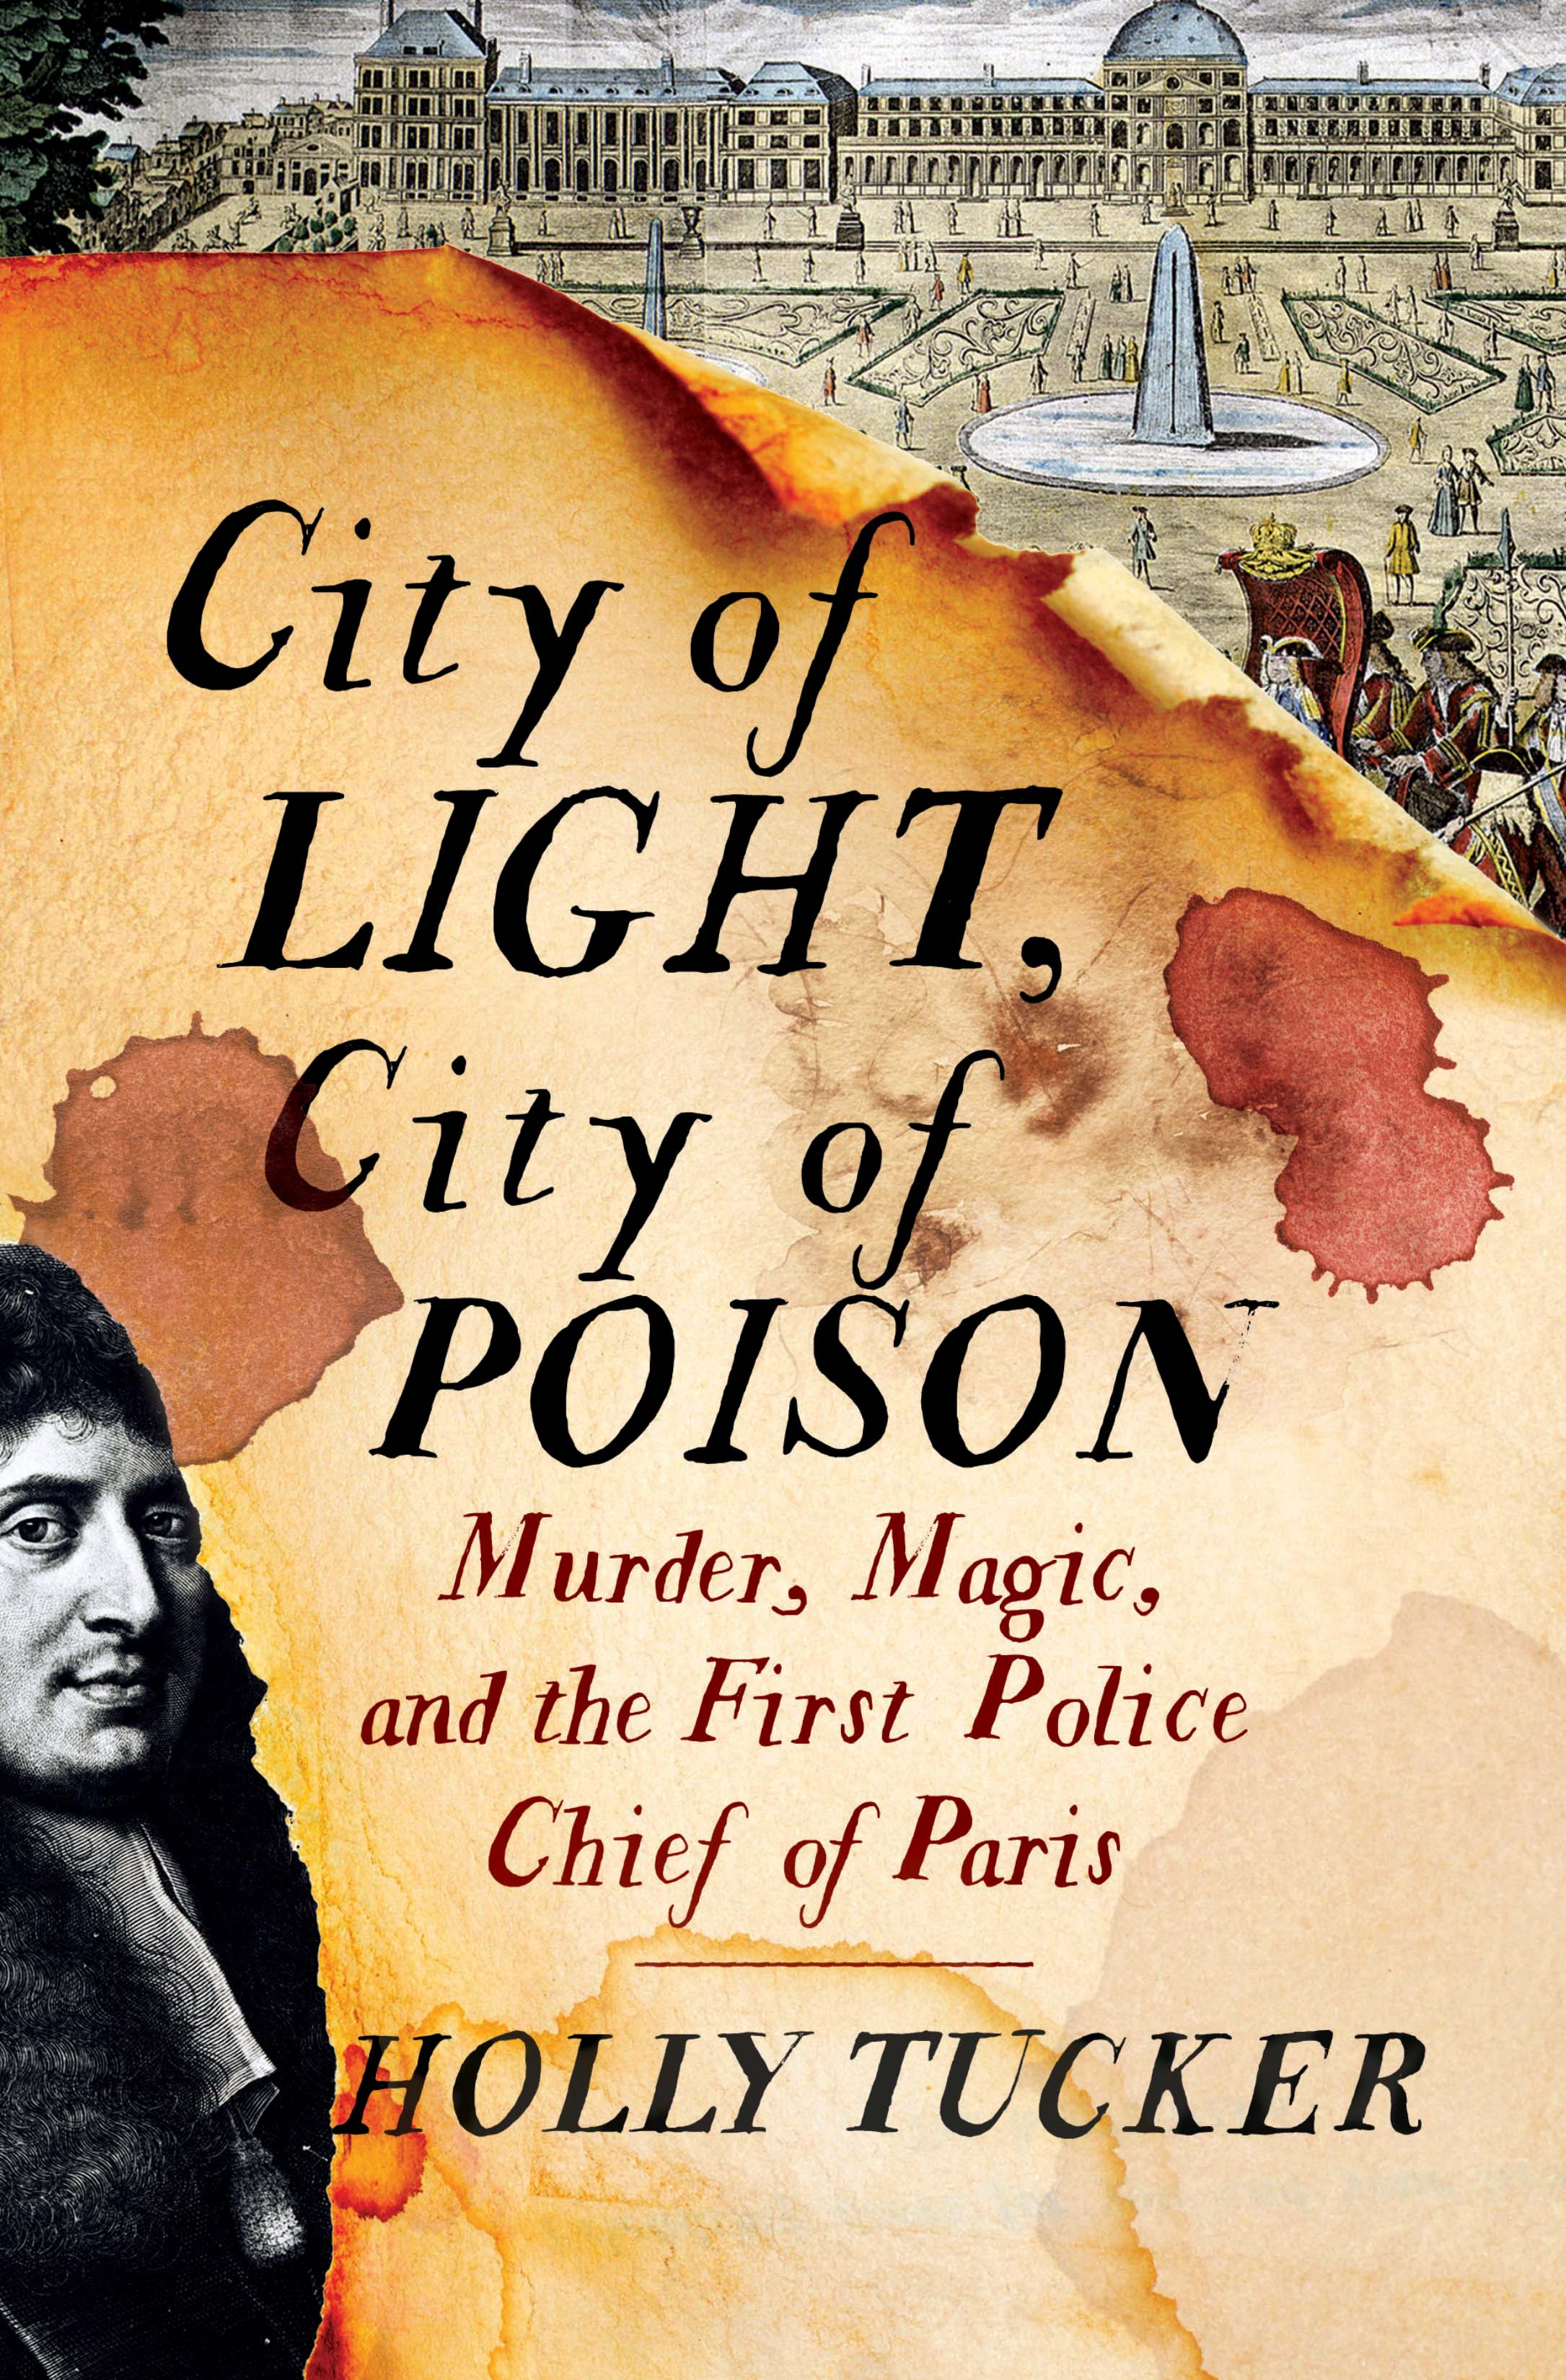 Purchase City of Light, City of Poison